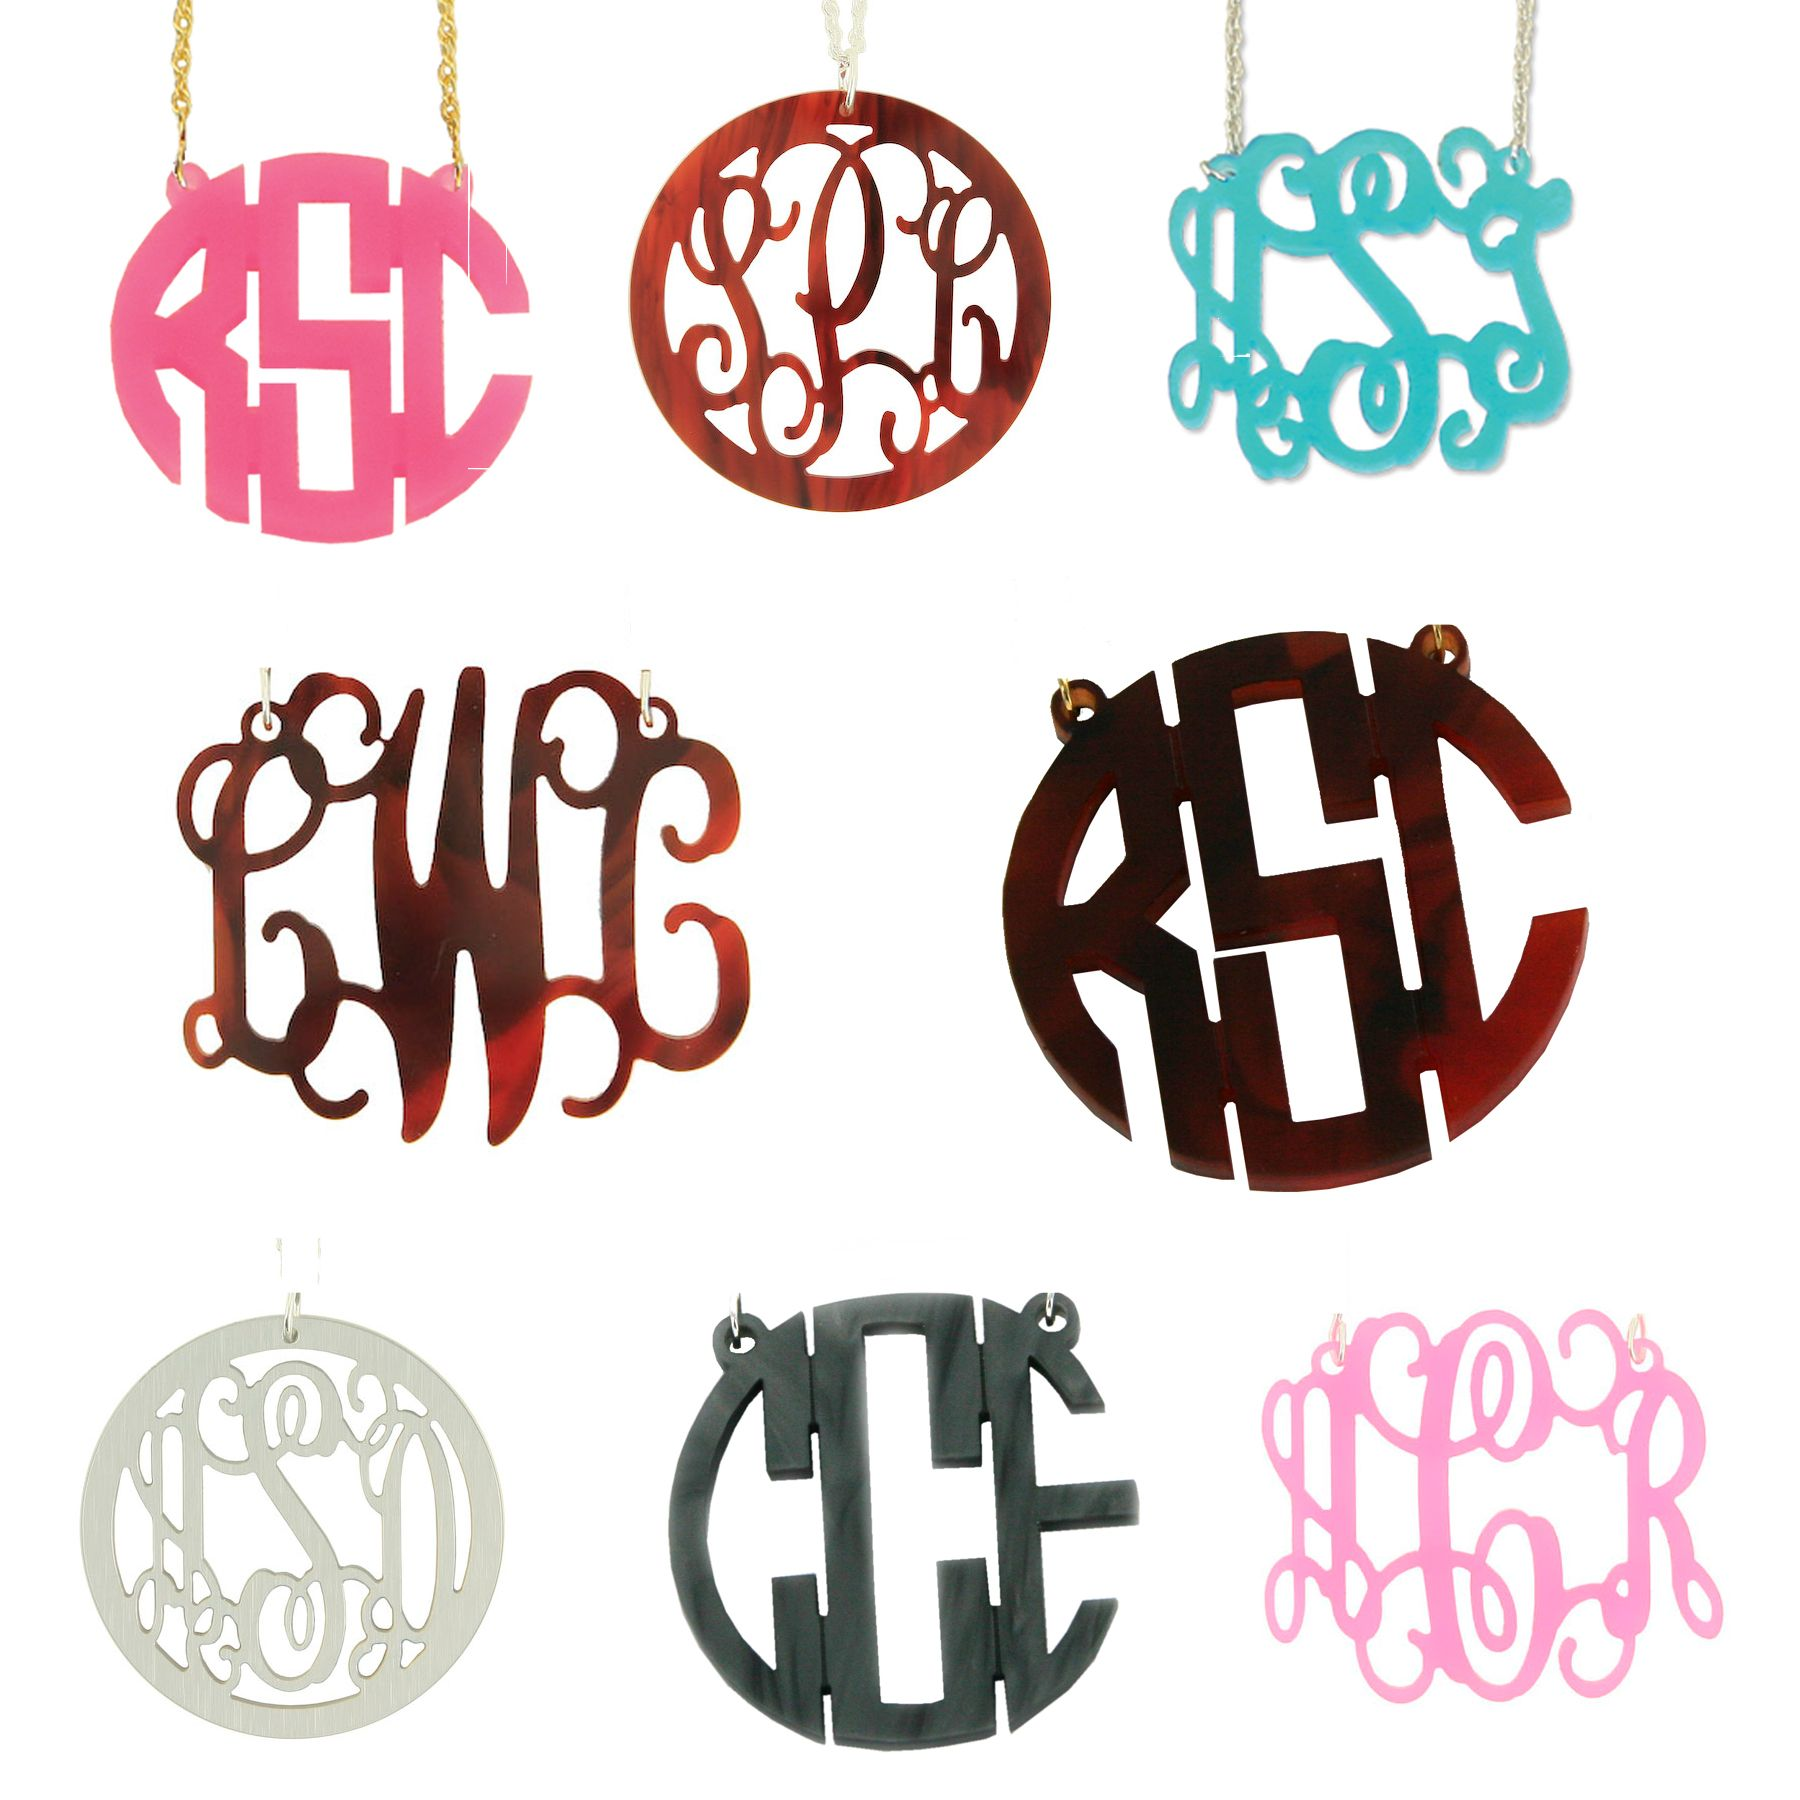 So excited about all the fun colors and styles for our new acrylic monogram necklaces!    http://www.sweetteapaperie.com/collections/jewelry-1